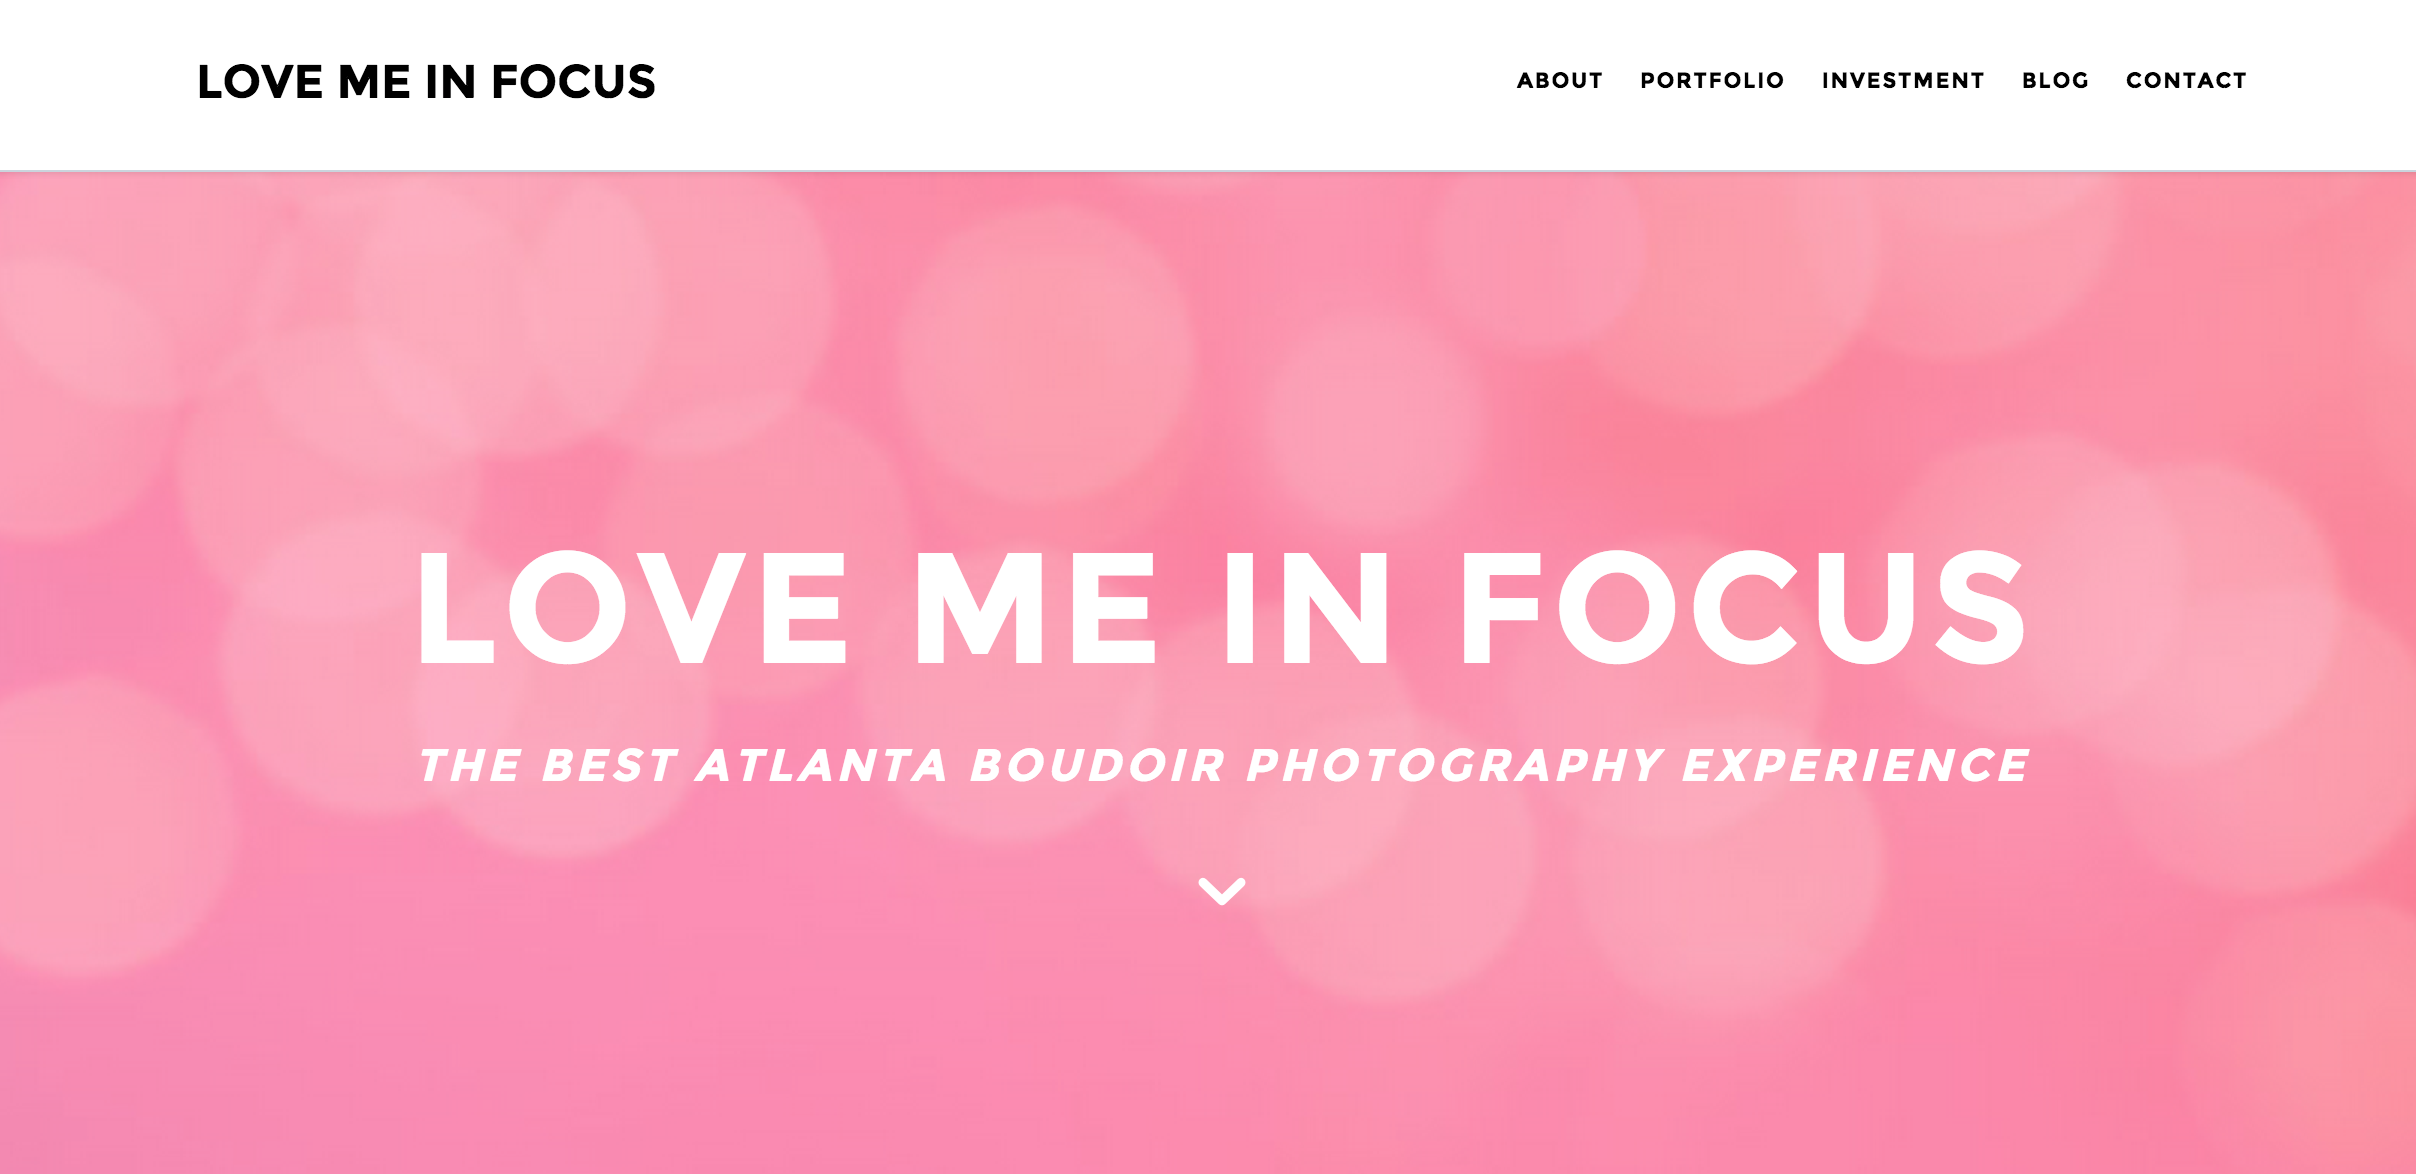 Something exciting is coming soon! | Atlanta Wedding Photographers